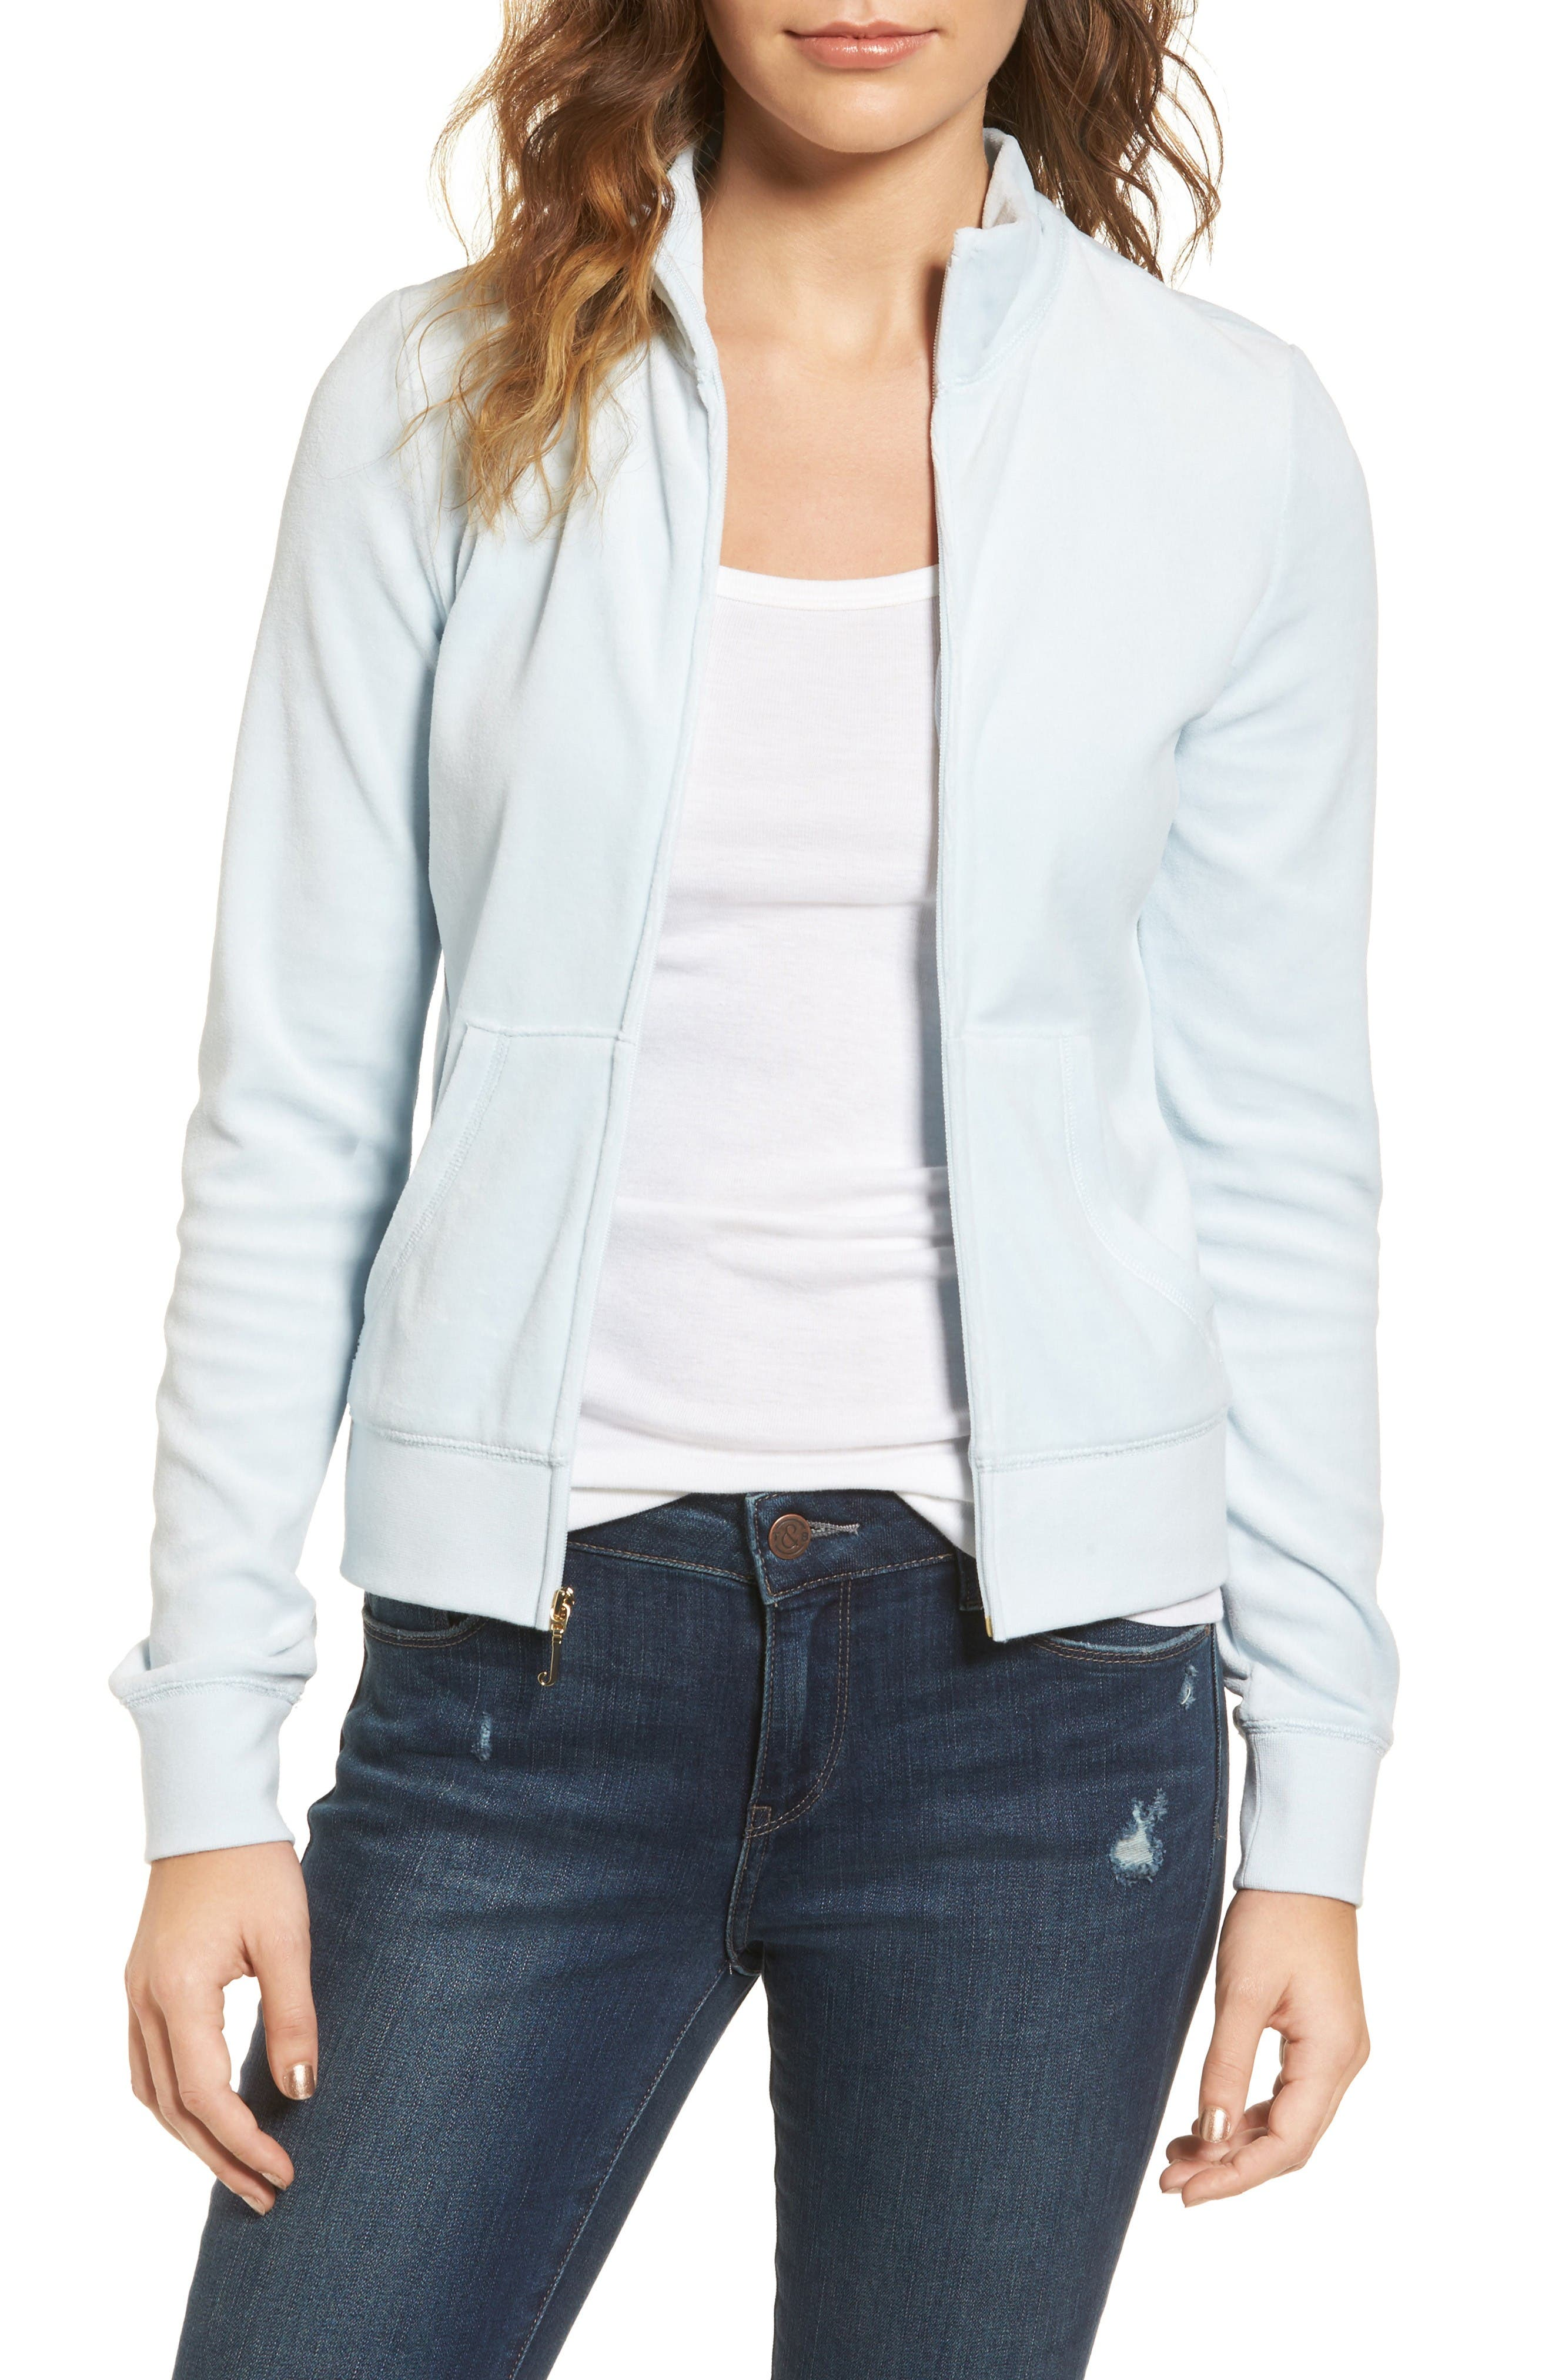 Main Image - Juicy Couture Fairfax Velour Track Jacket